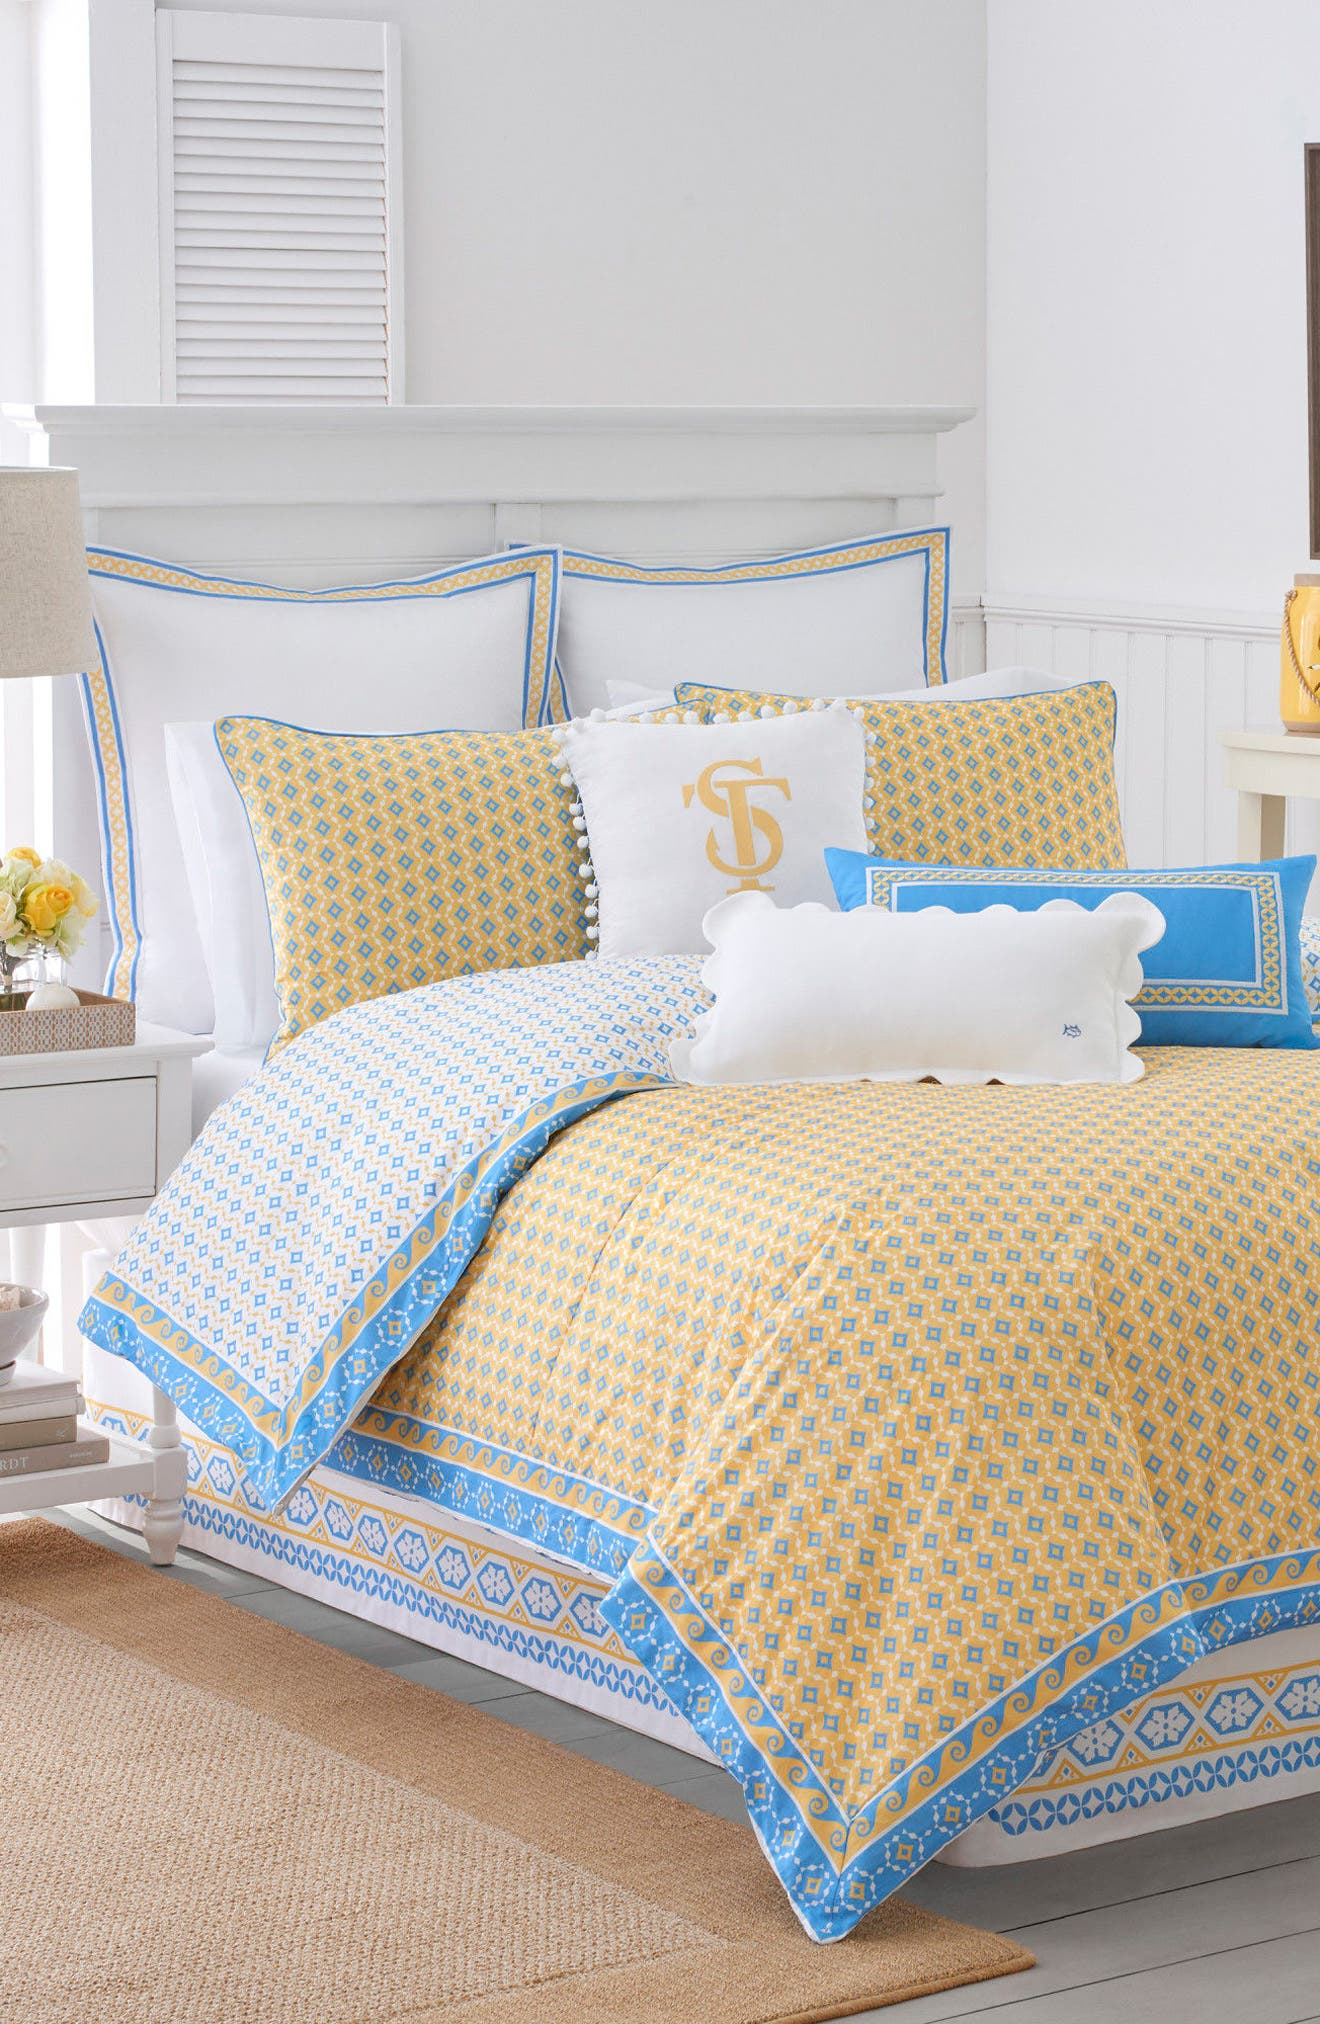 Sailgate Comforter, Sham & Bed Skirt Set,                             Main thumbnail 1, color,                             Yellow